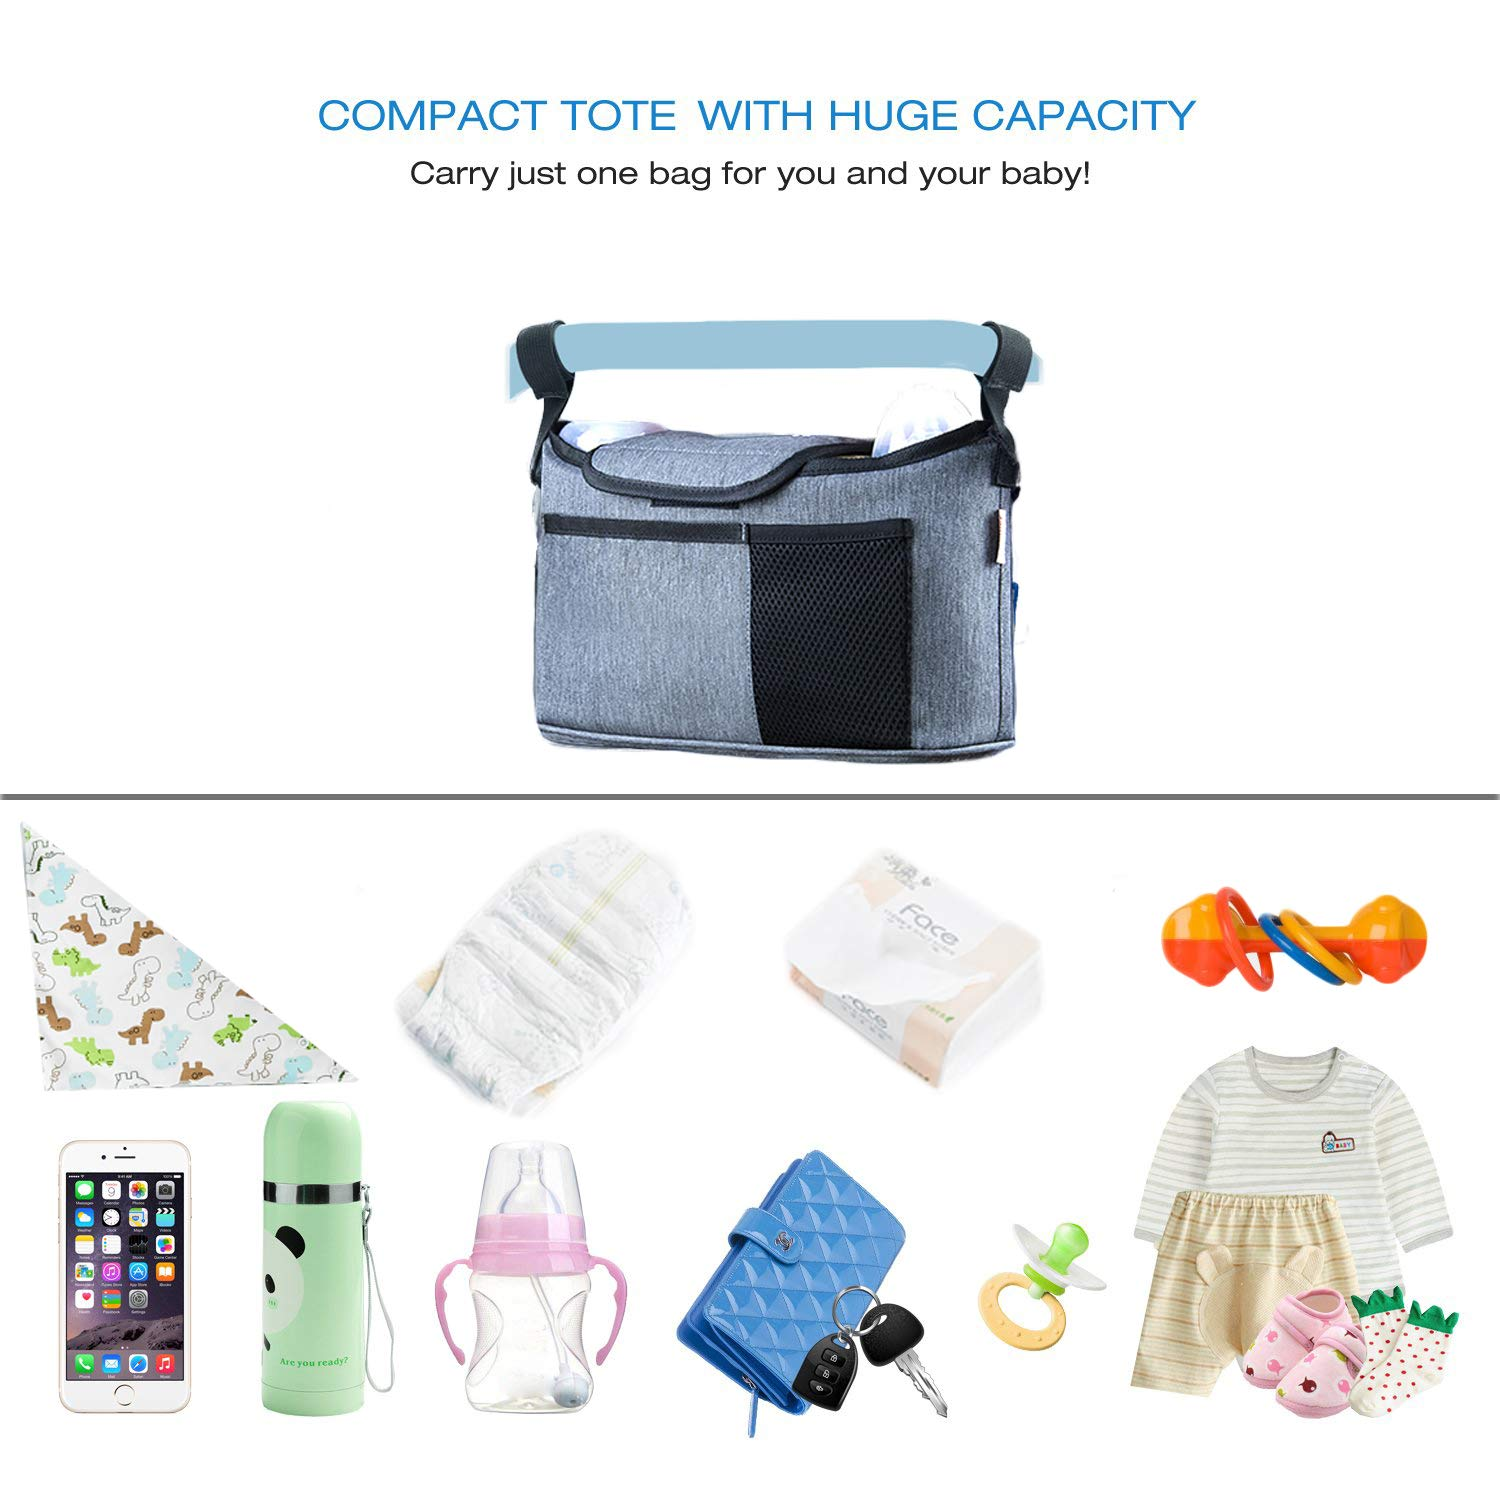 ThxMadam Stroller Accessories Organizer Bag with 2 Cup Holders,Multiple Pockand Phone Pocket Deep for Diapers Phones Wallets,Toys